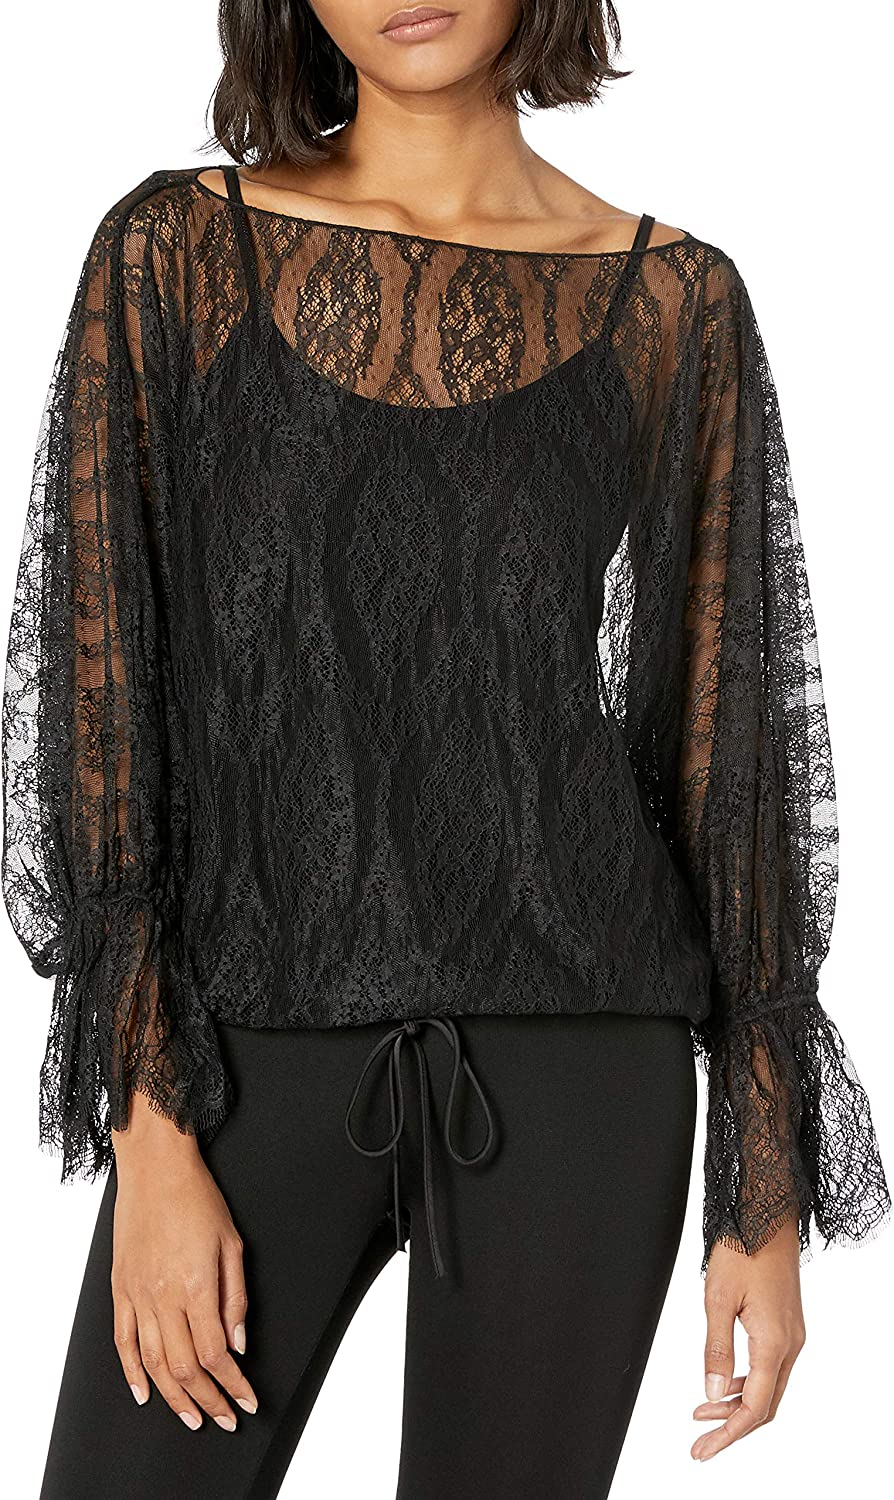 Bailey 44 Womens The Bliss of Insanity Top